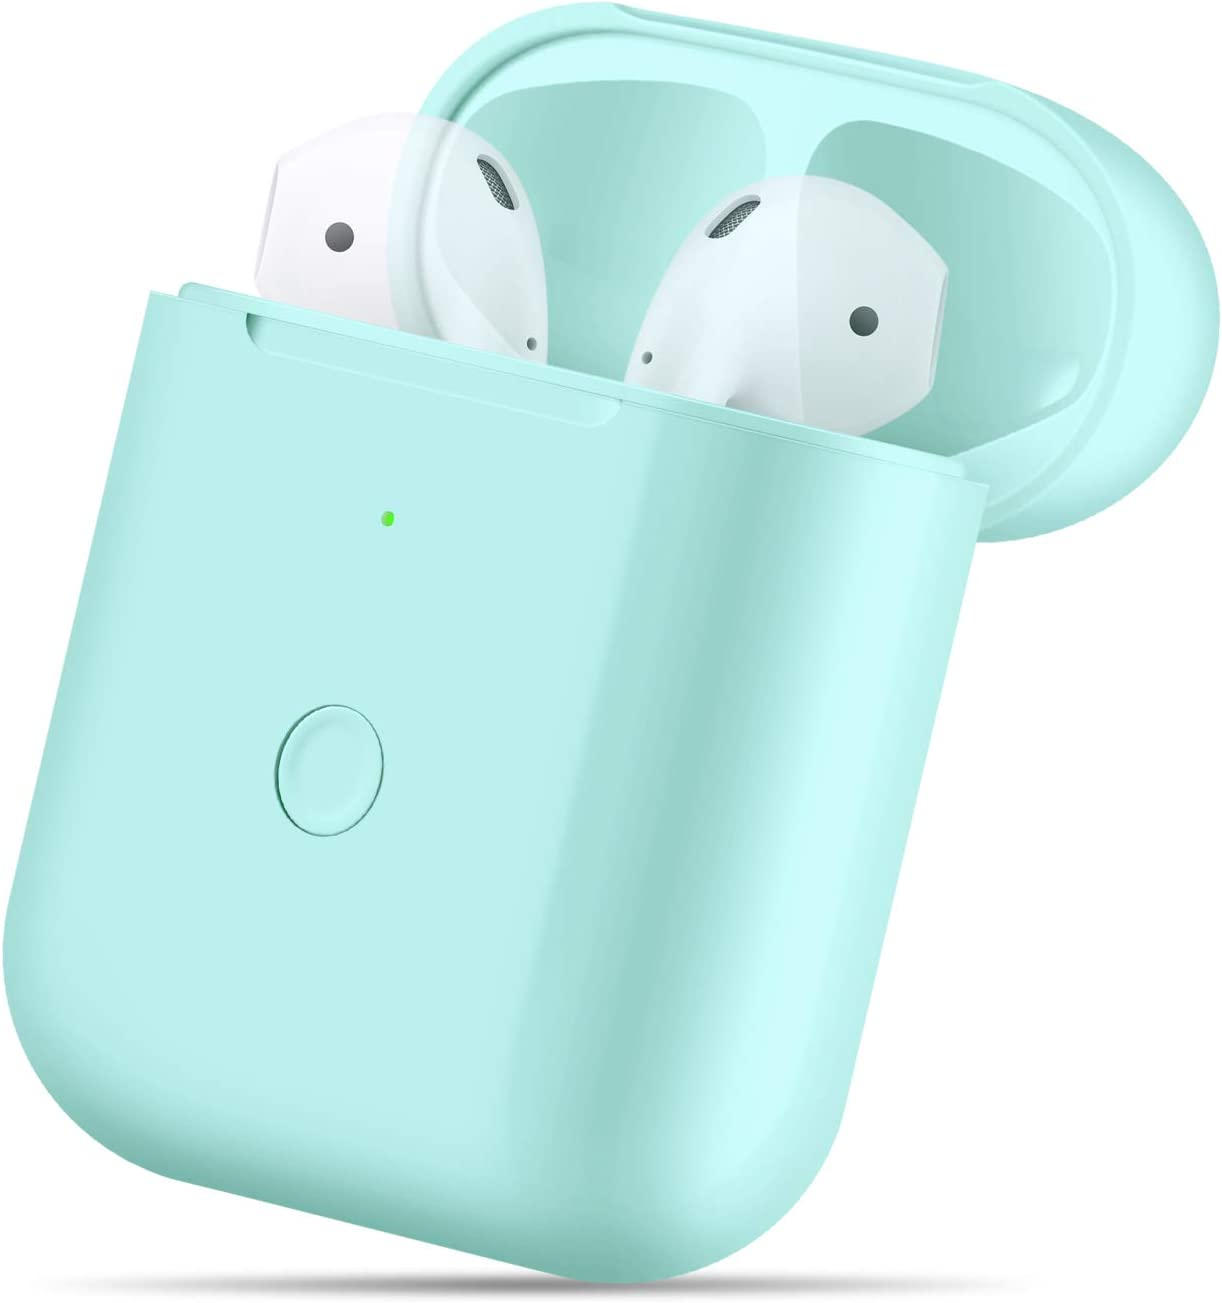 Wireless Charging Case Compatible with AirPods 1 2,Air pods Charger Case Replacement with Bluetooth Pairing Sync Button, no Aipods